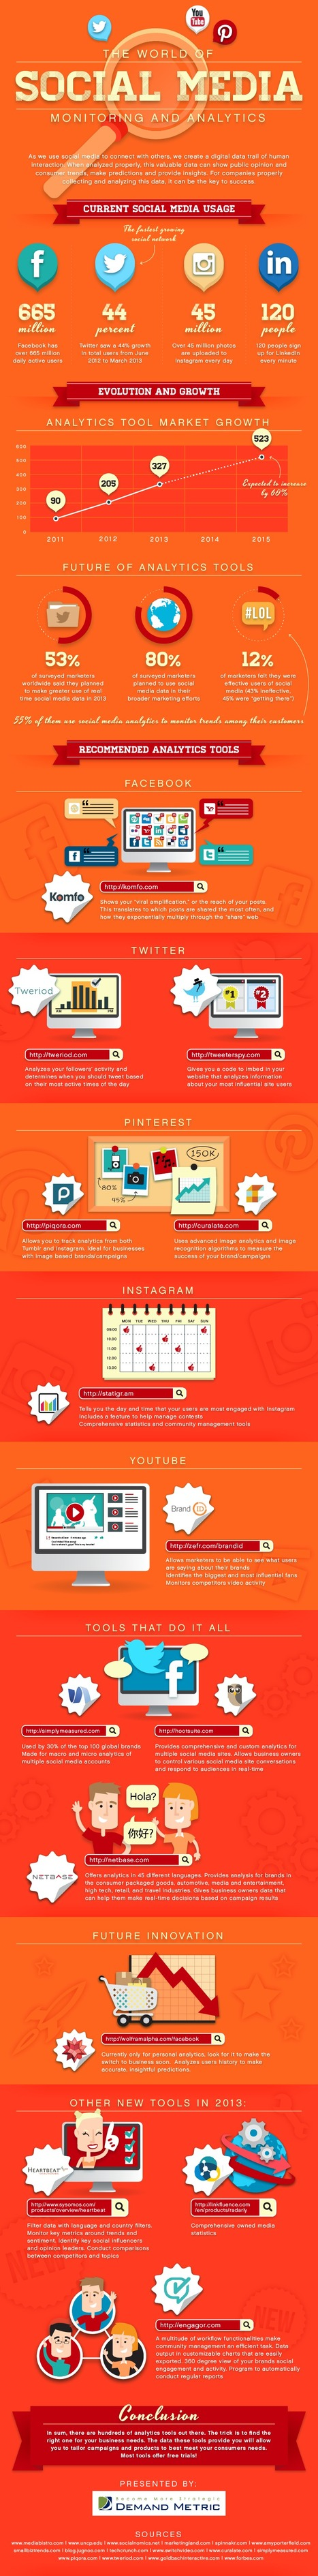 The World Of Social Media Monitoring And Analytics [INFOGRAPHIC] - AllTwitter | Educational Use of Social Media | Scoop.it